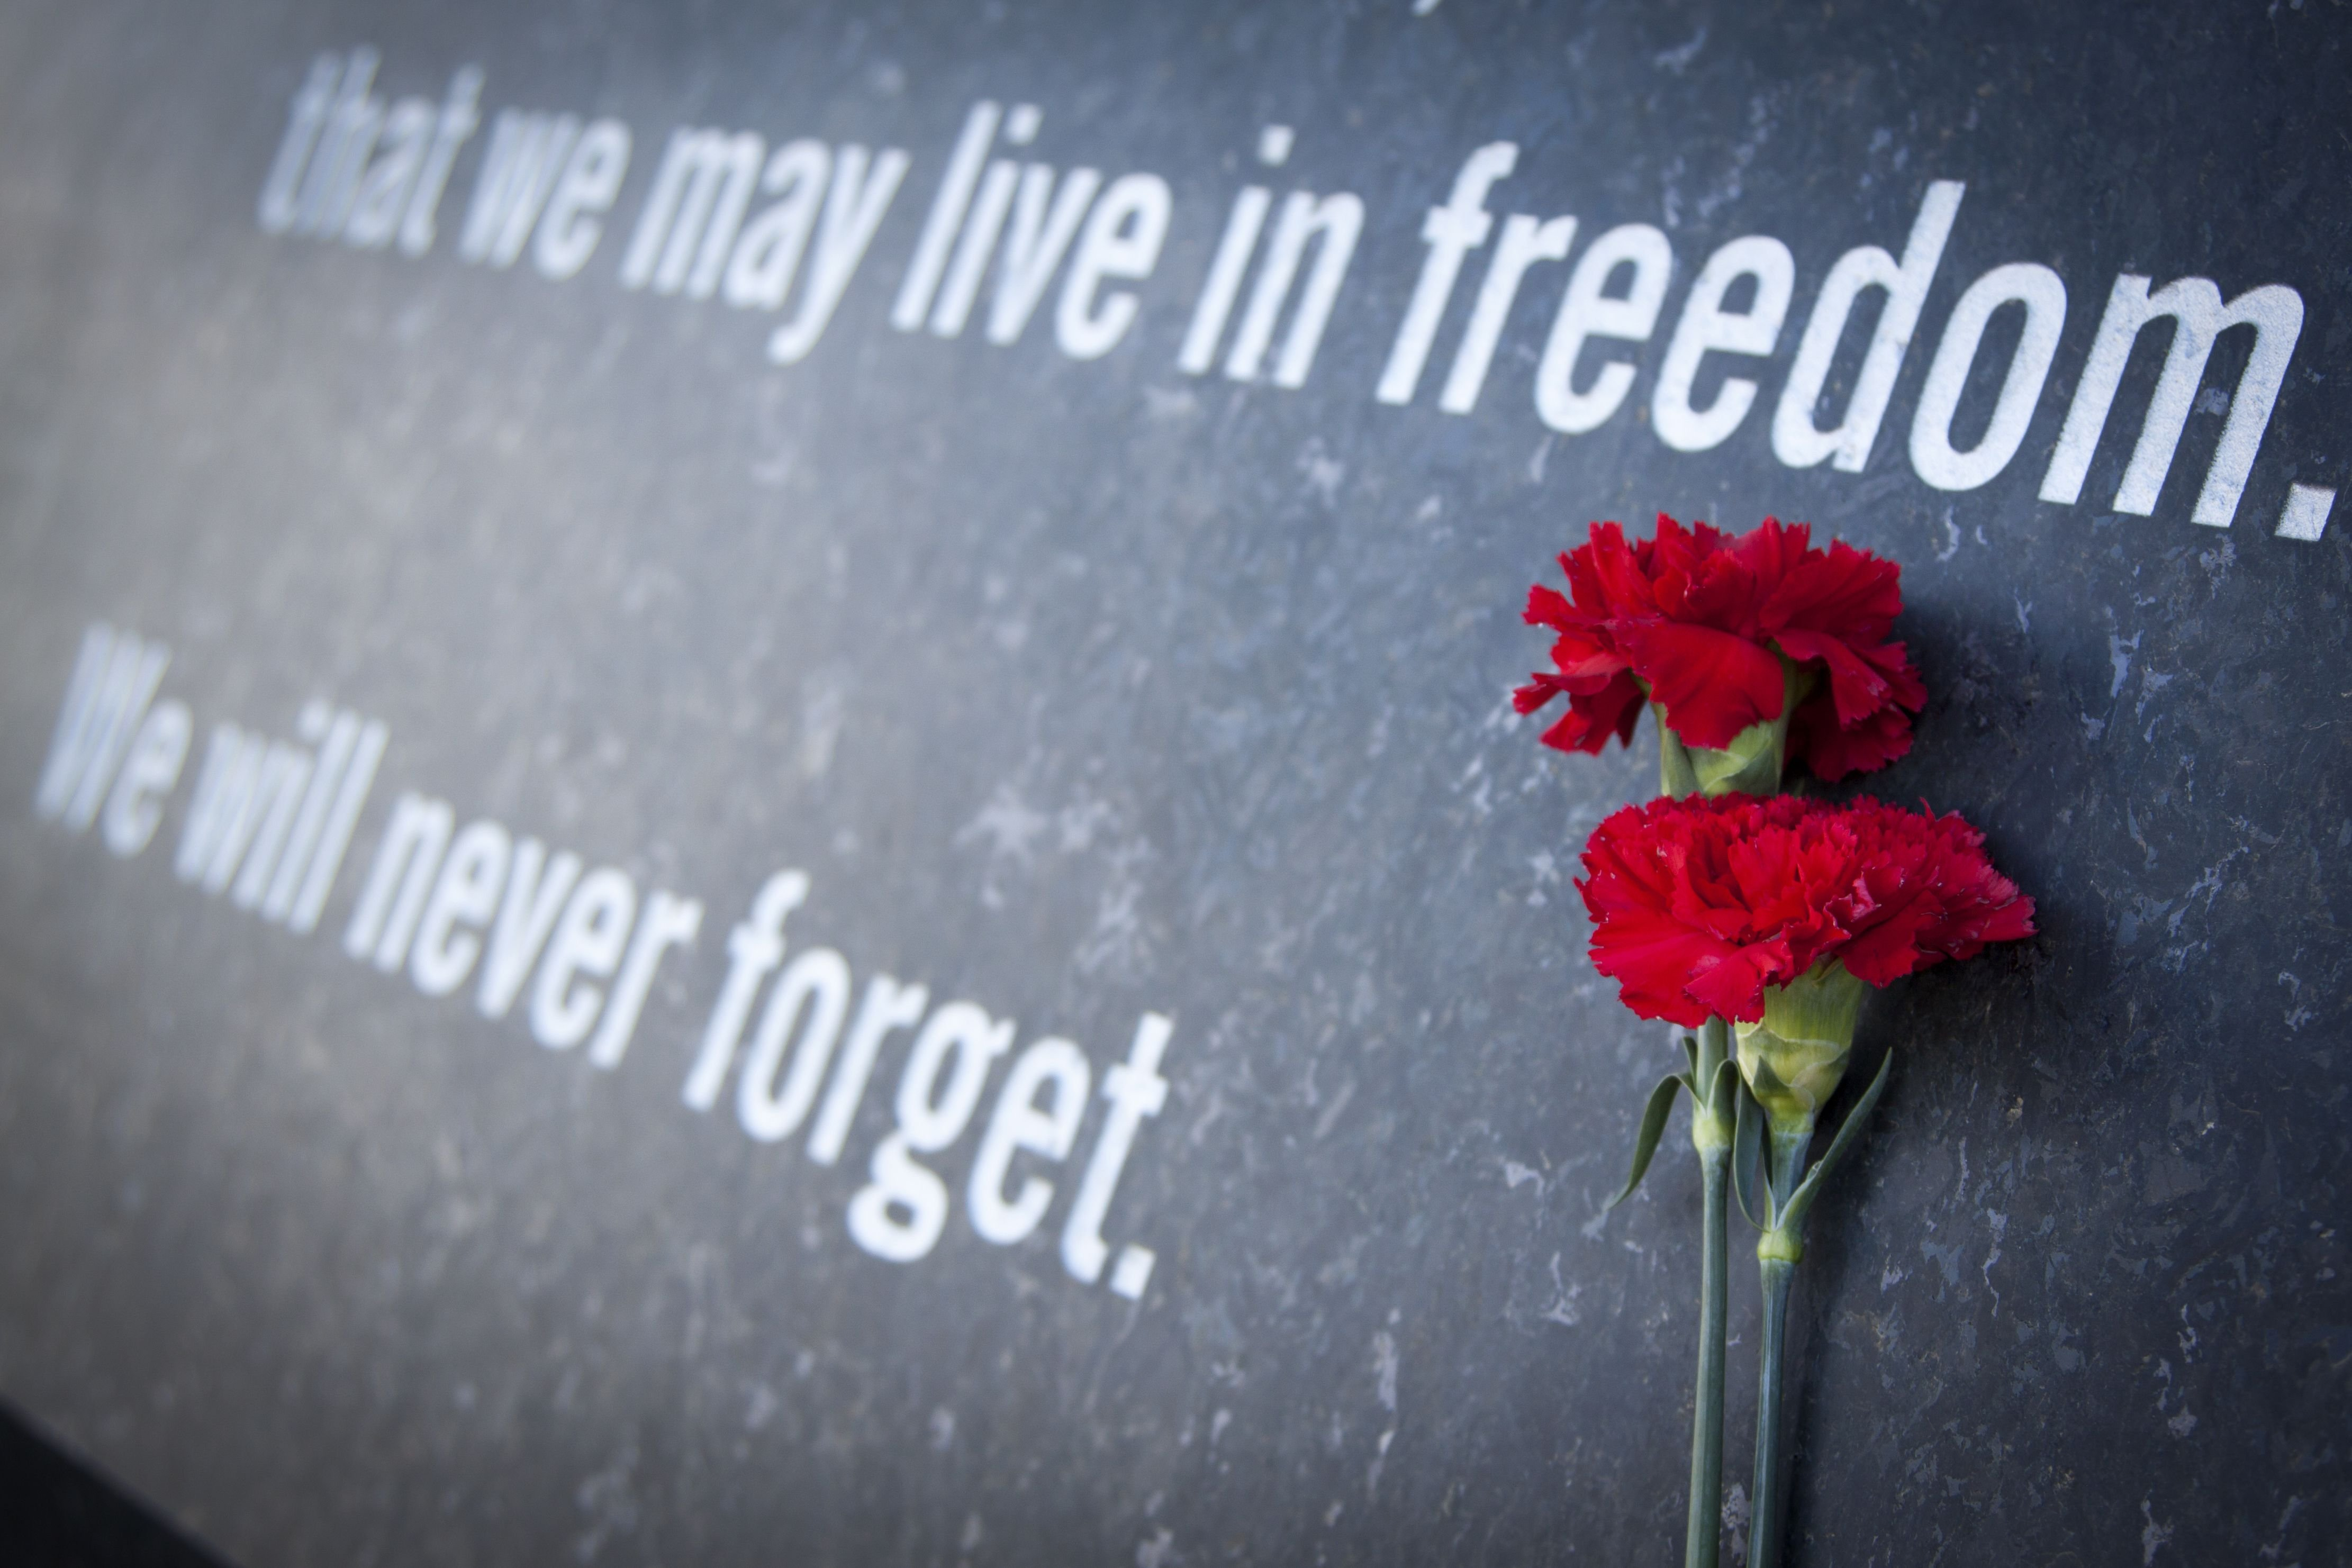 A grave with a red carnation flower.   Source: Shutterstock